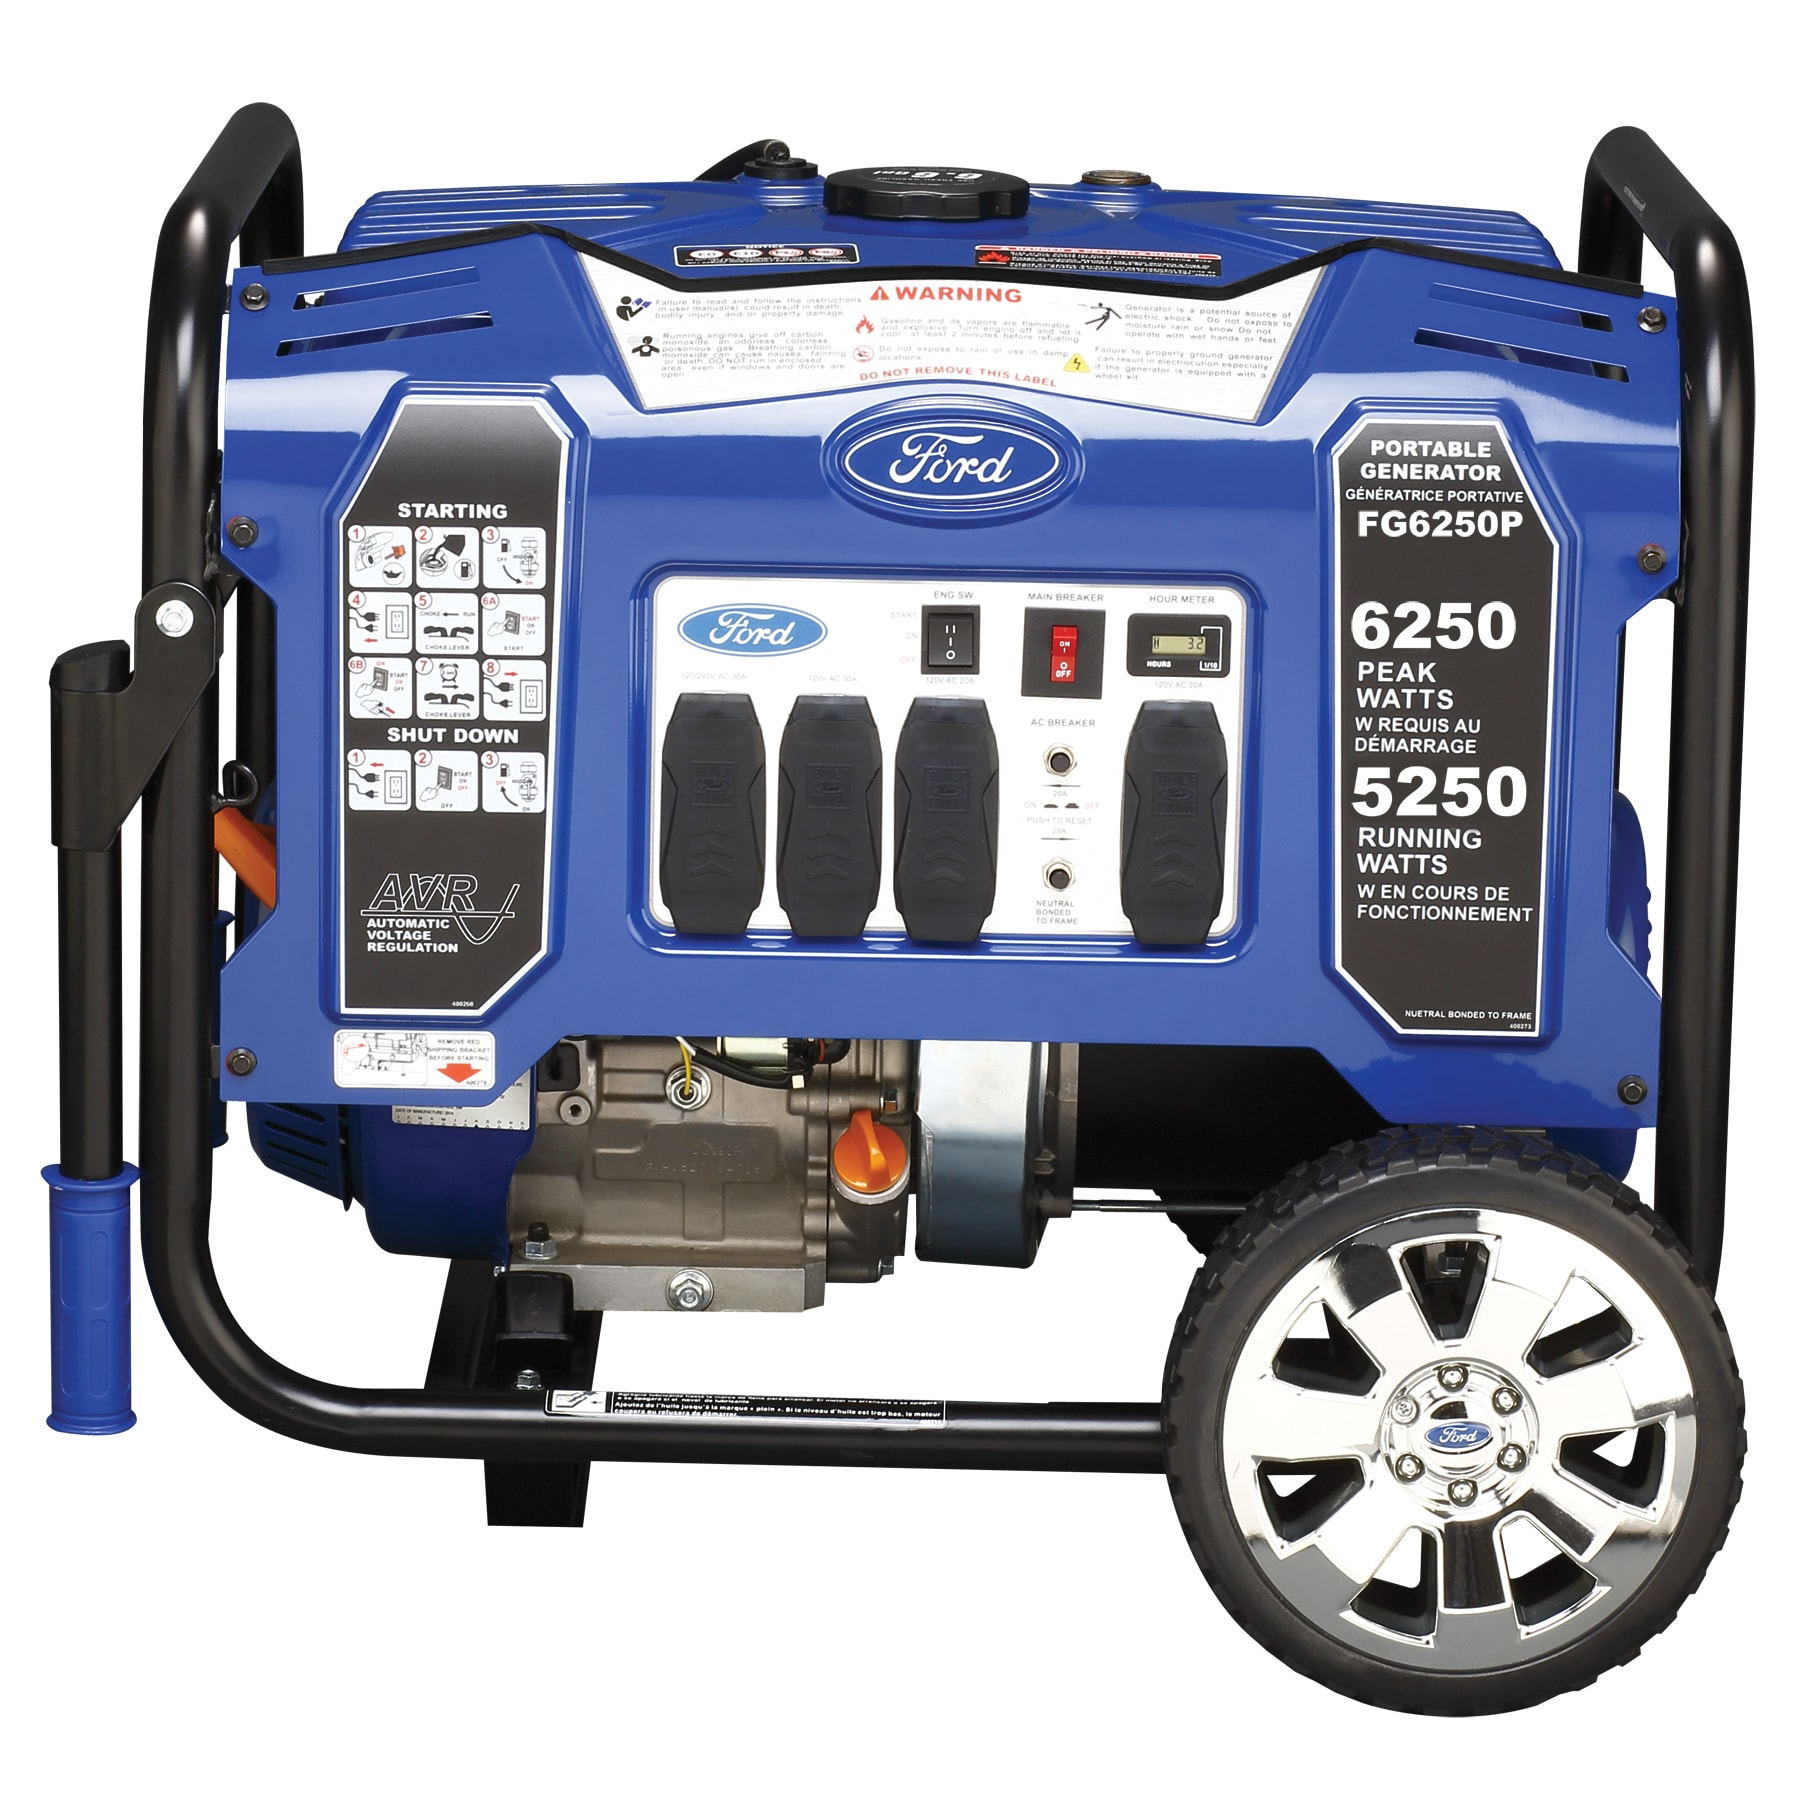 Ford 6250 watt Portable Generator Free Shipping Today